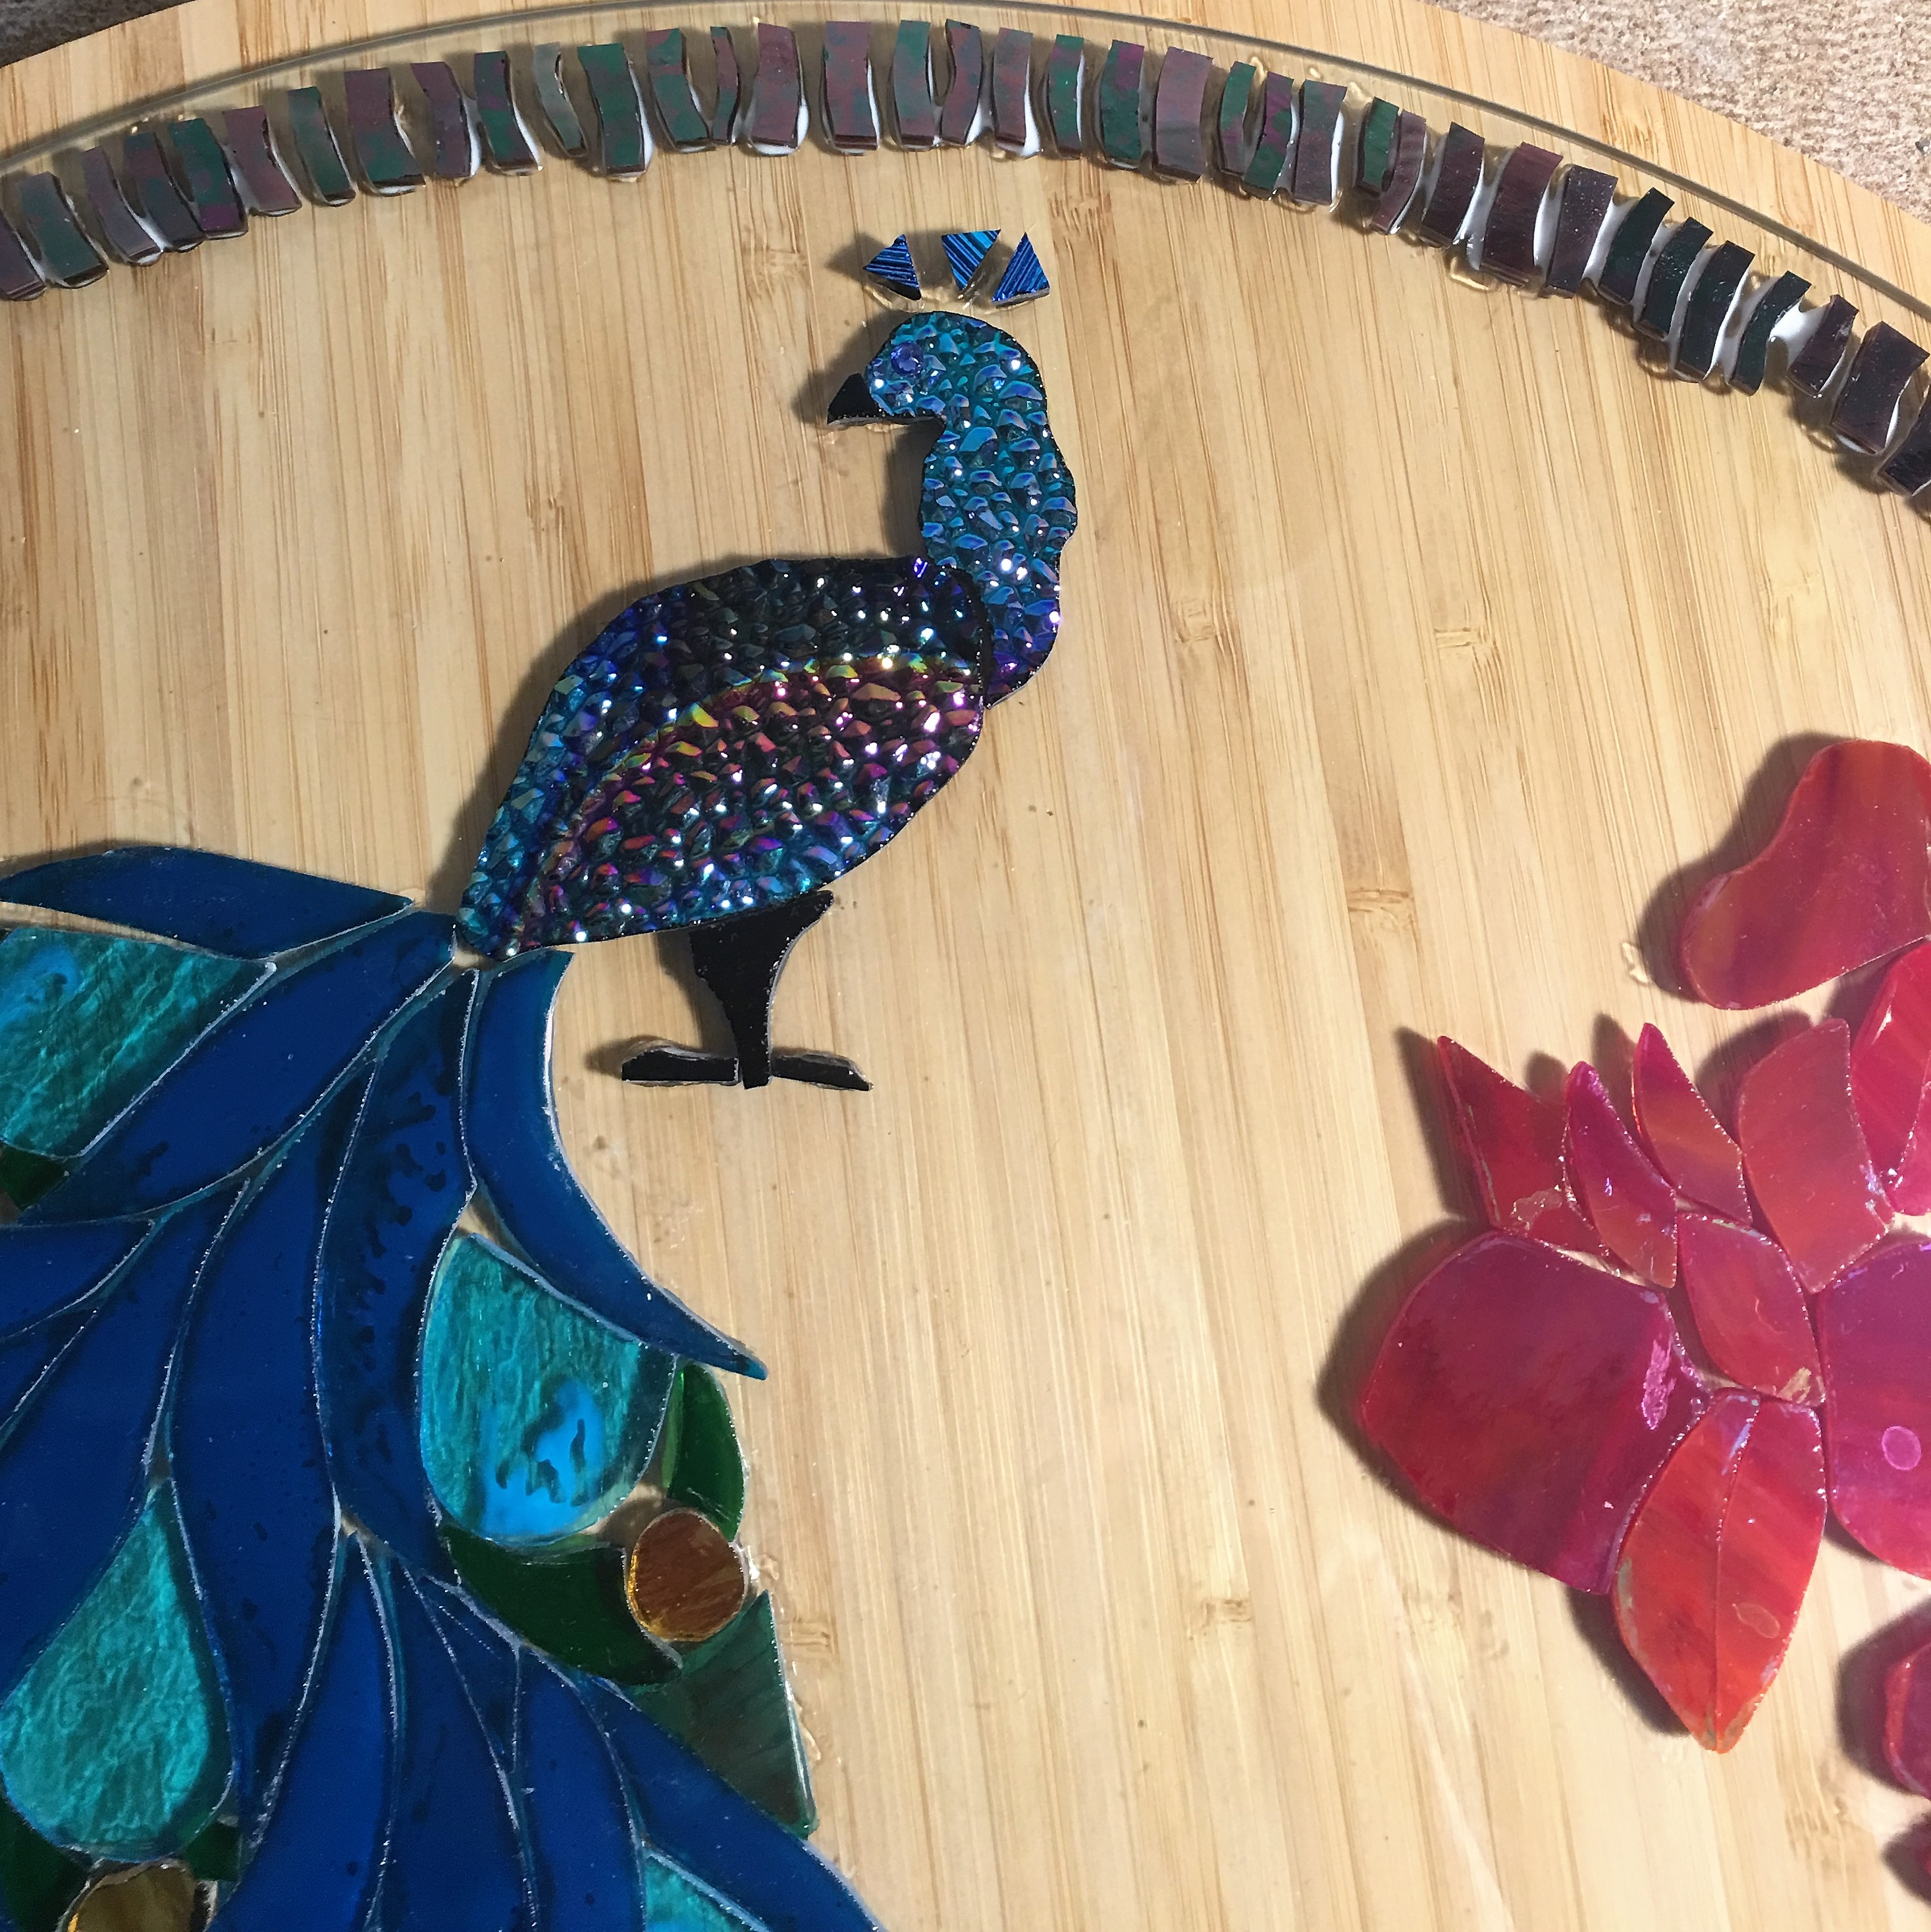 A glass blue peacock sits on a table with a glass border forming around it, as a mosiac table is created.